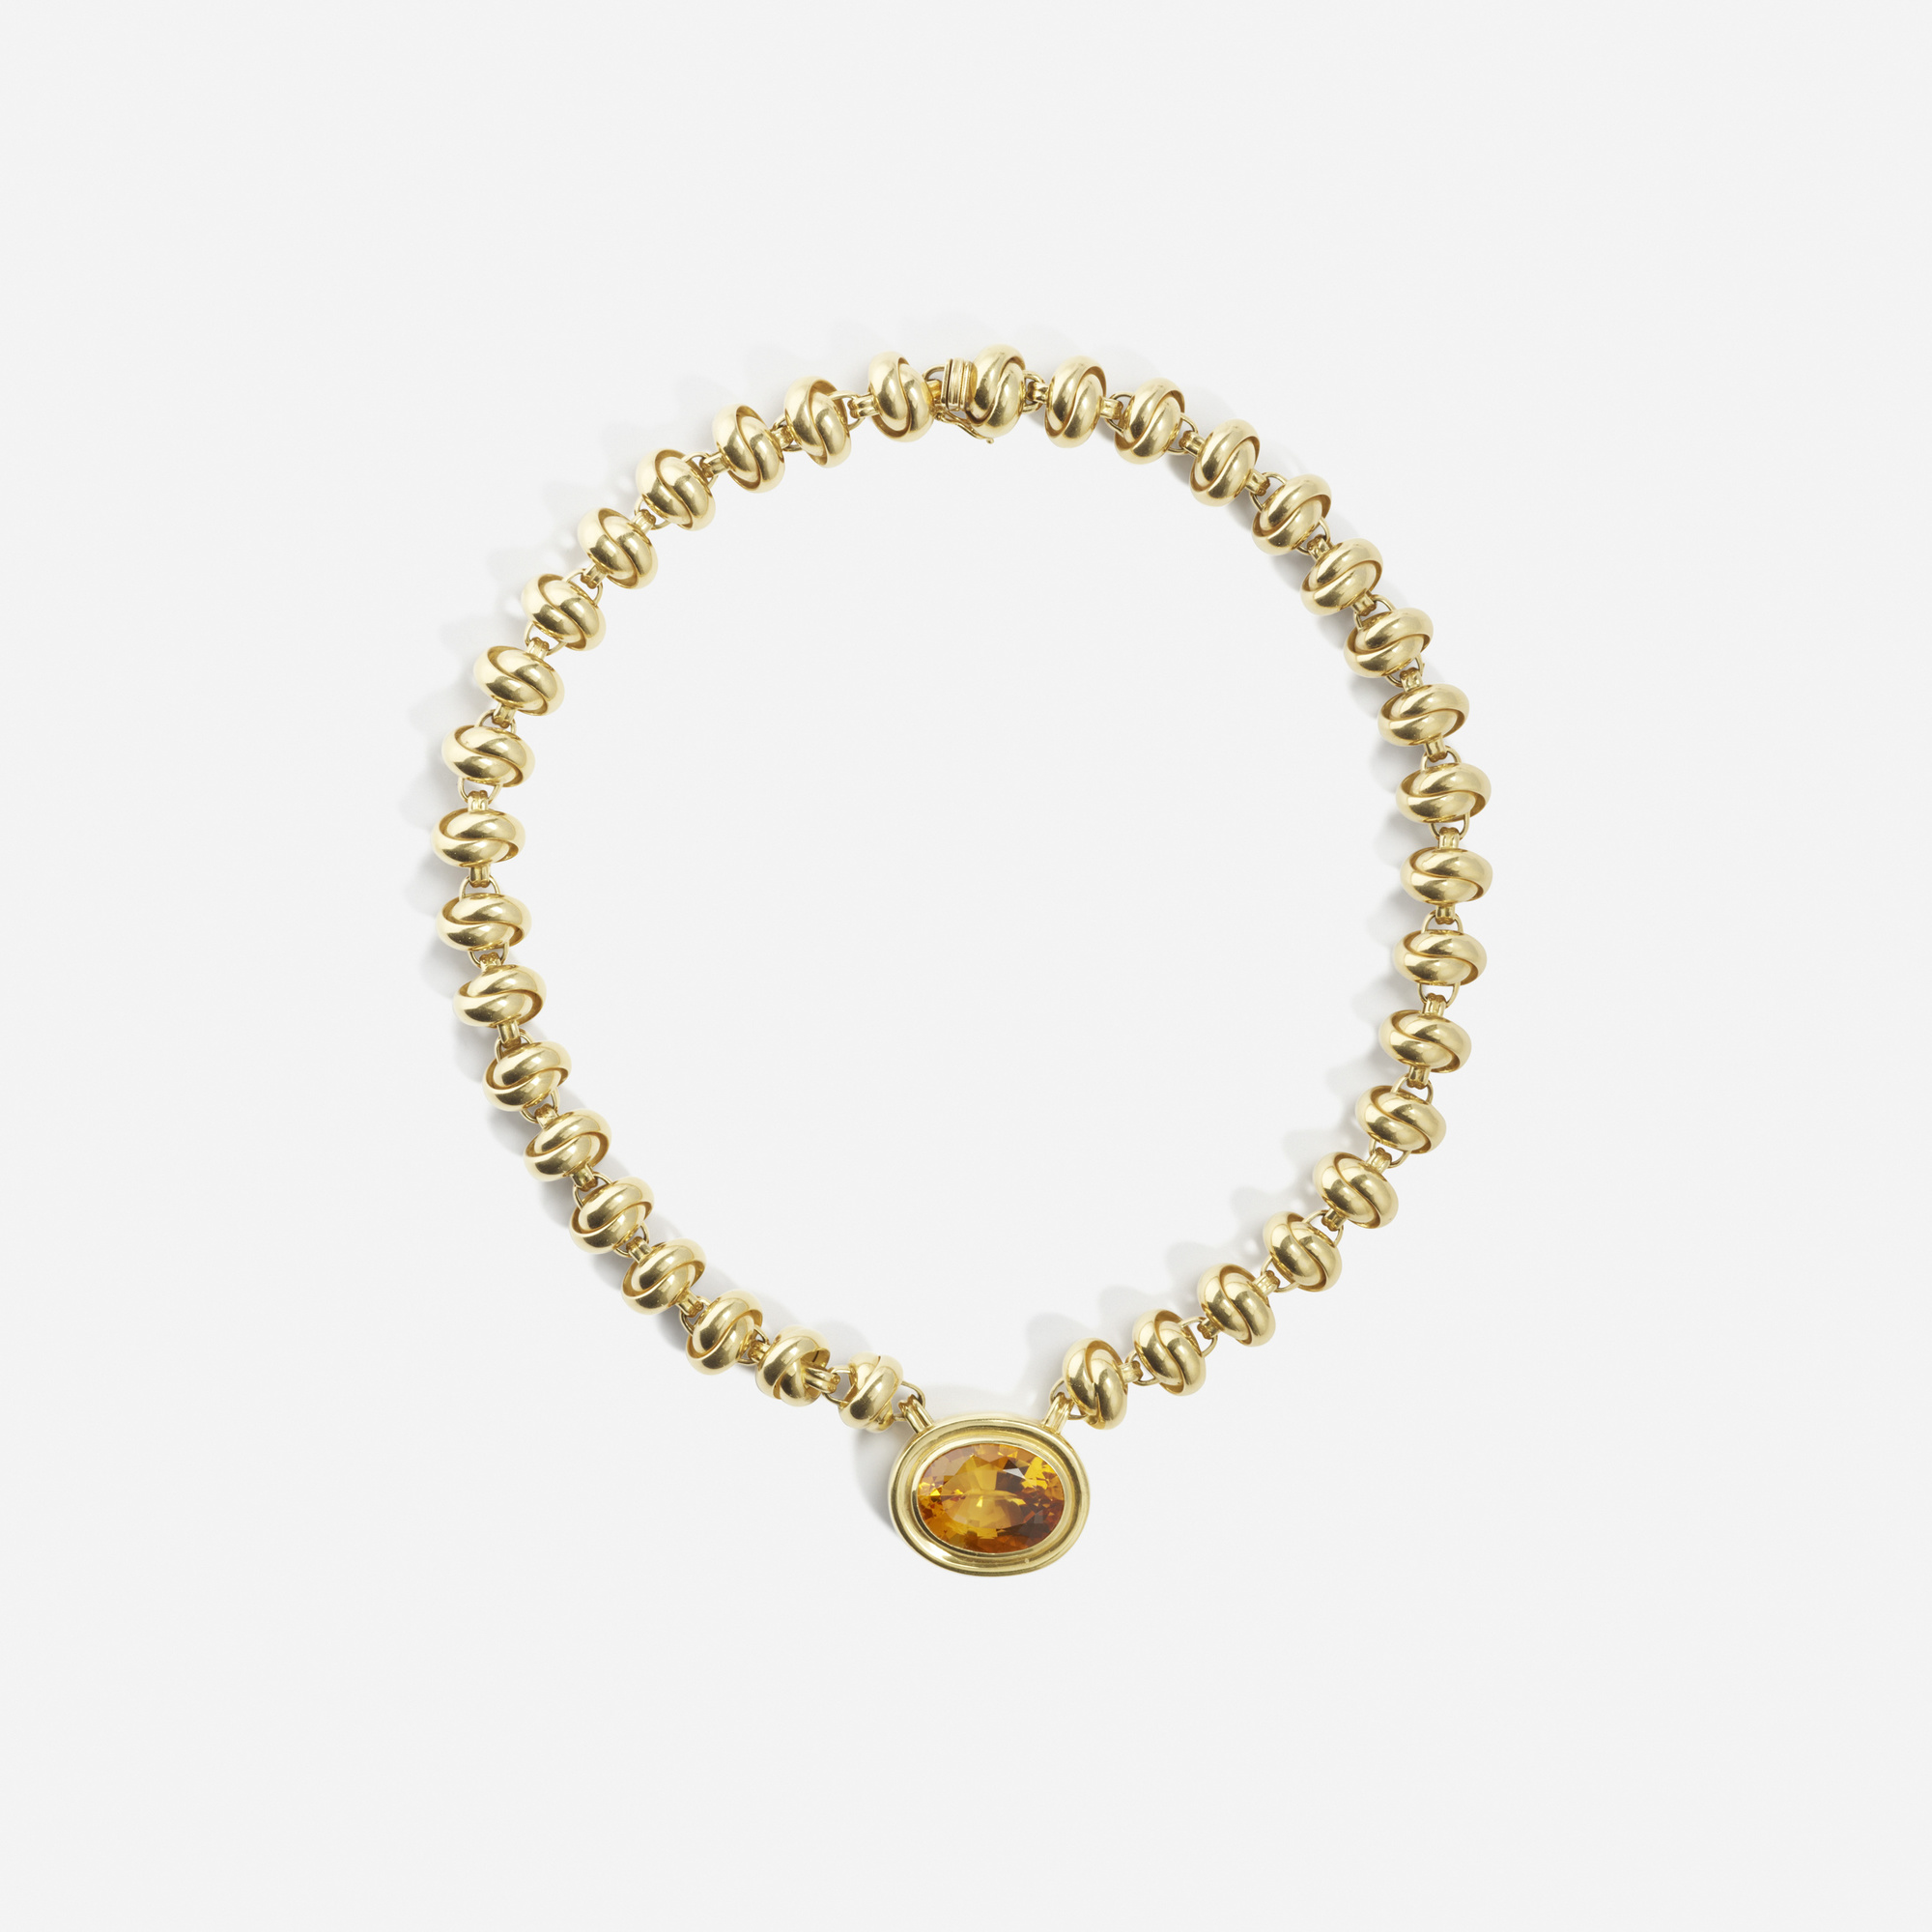 199: Paloma Picasso for Tiffany & Co. / A gold and citrine bracelet (1 of 2)